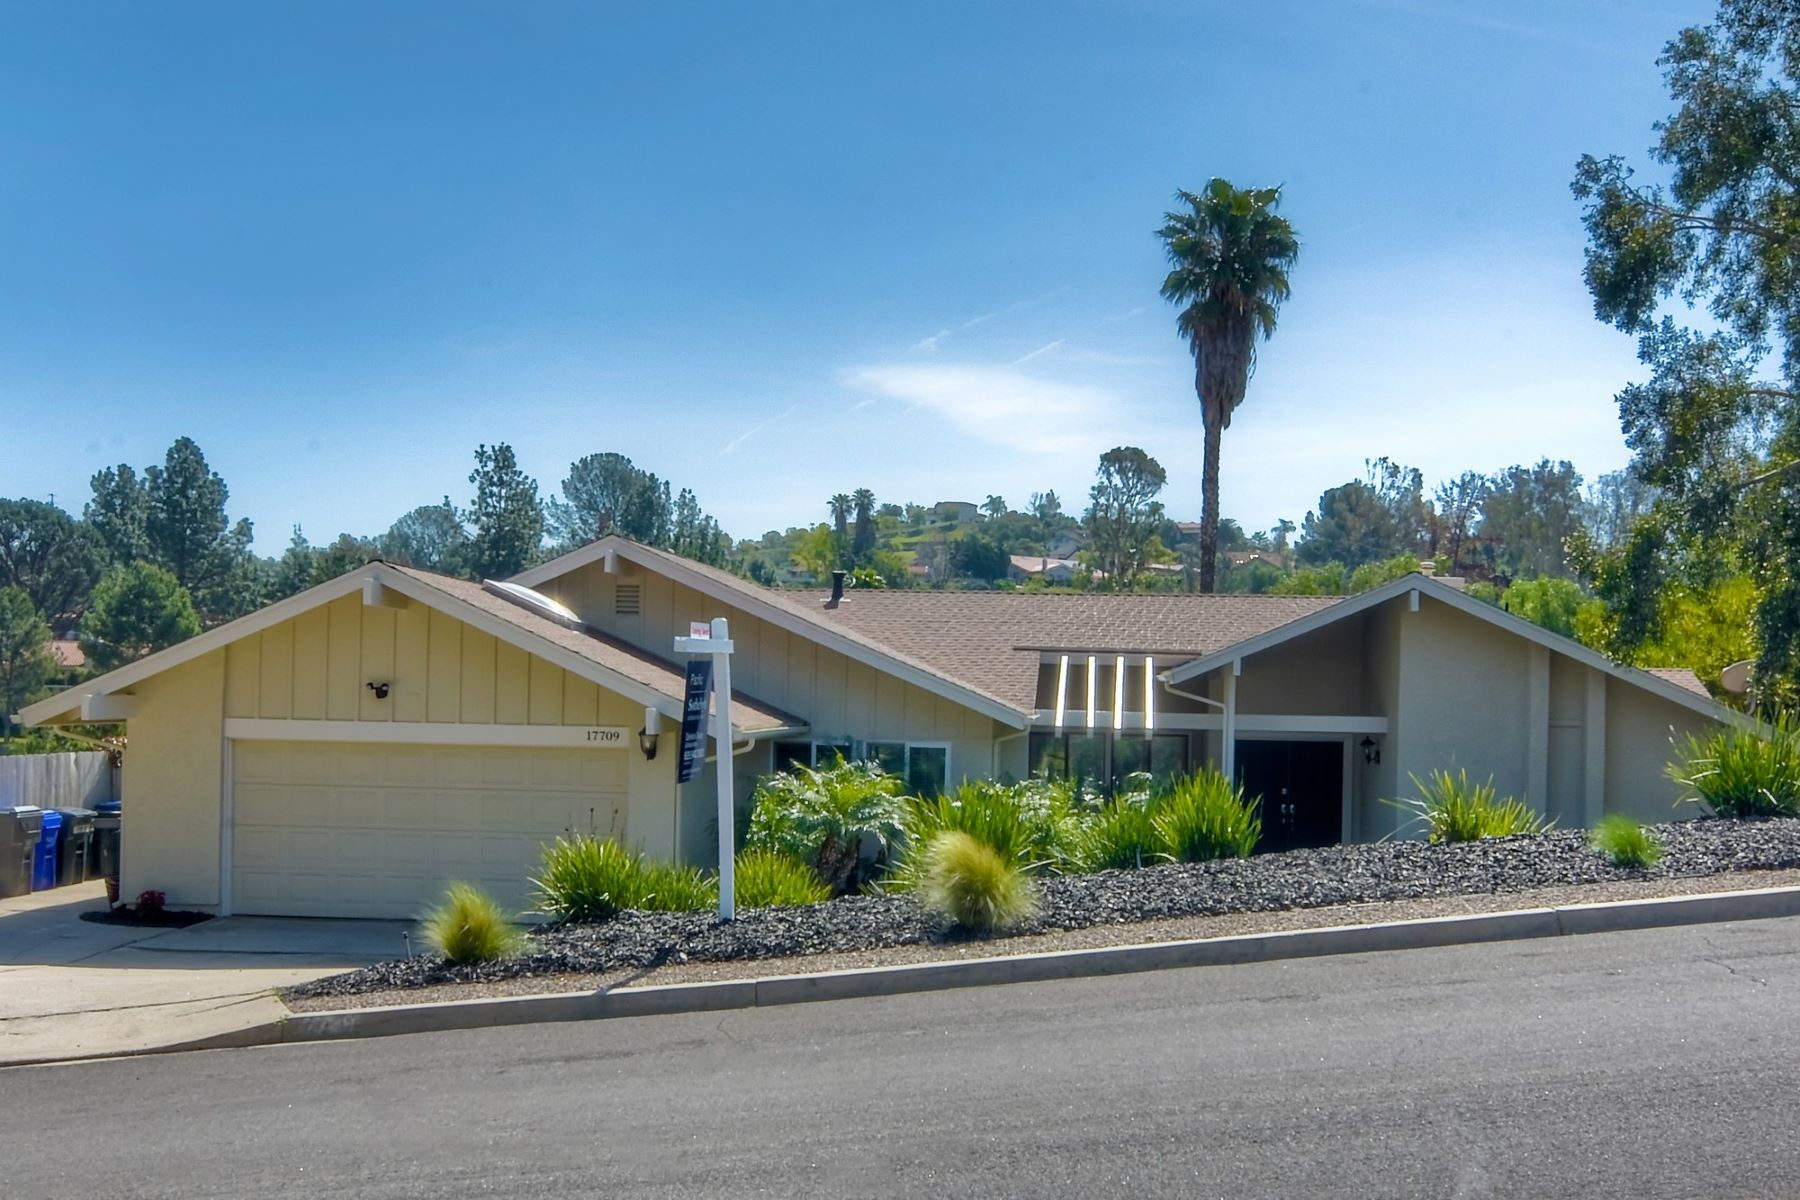 Single Family Homes for Active at Single and Stunning! 17709 Saint Andrews Drive Poway, California 92064 United States